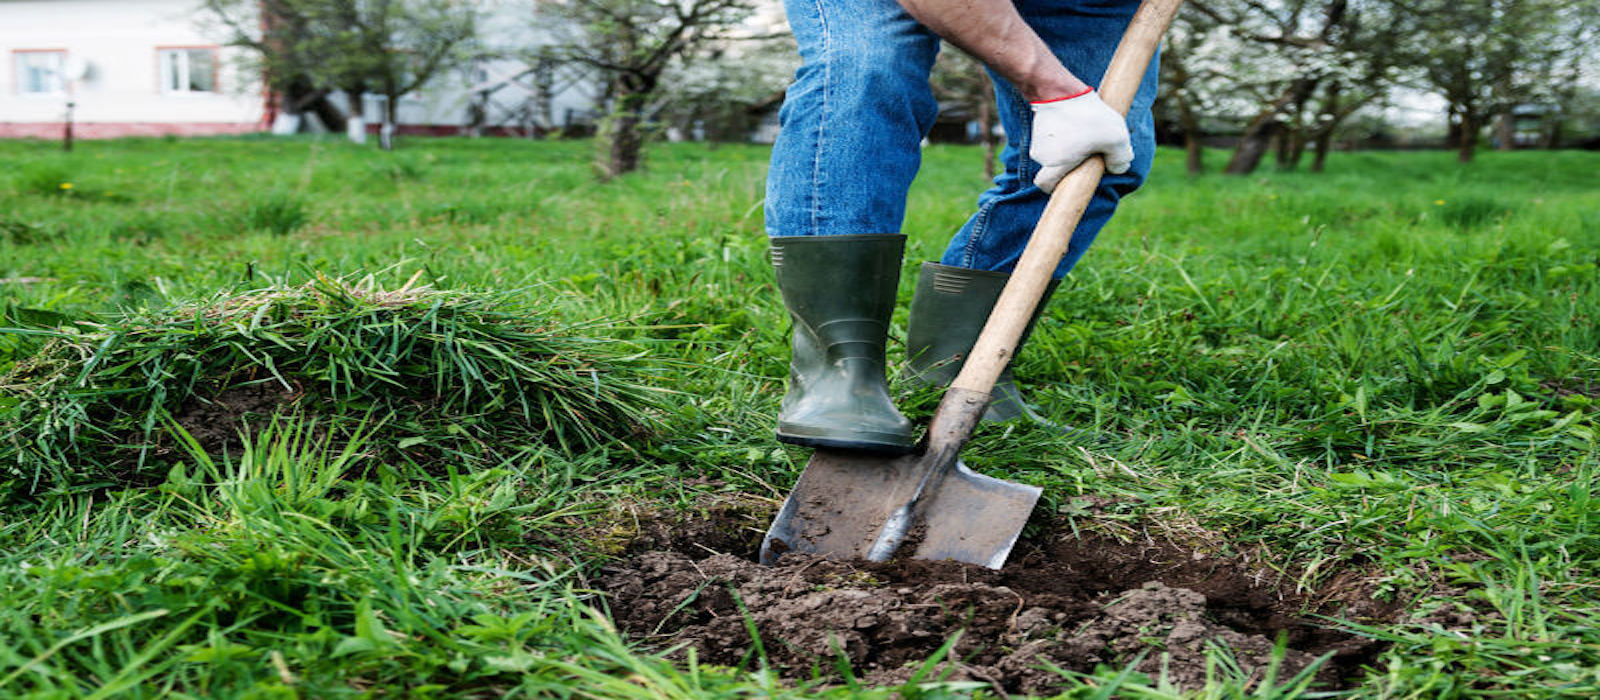 Septic Inspections: What is Involved & Costs